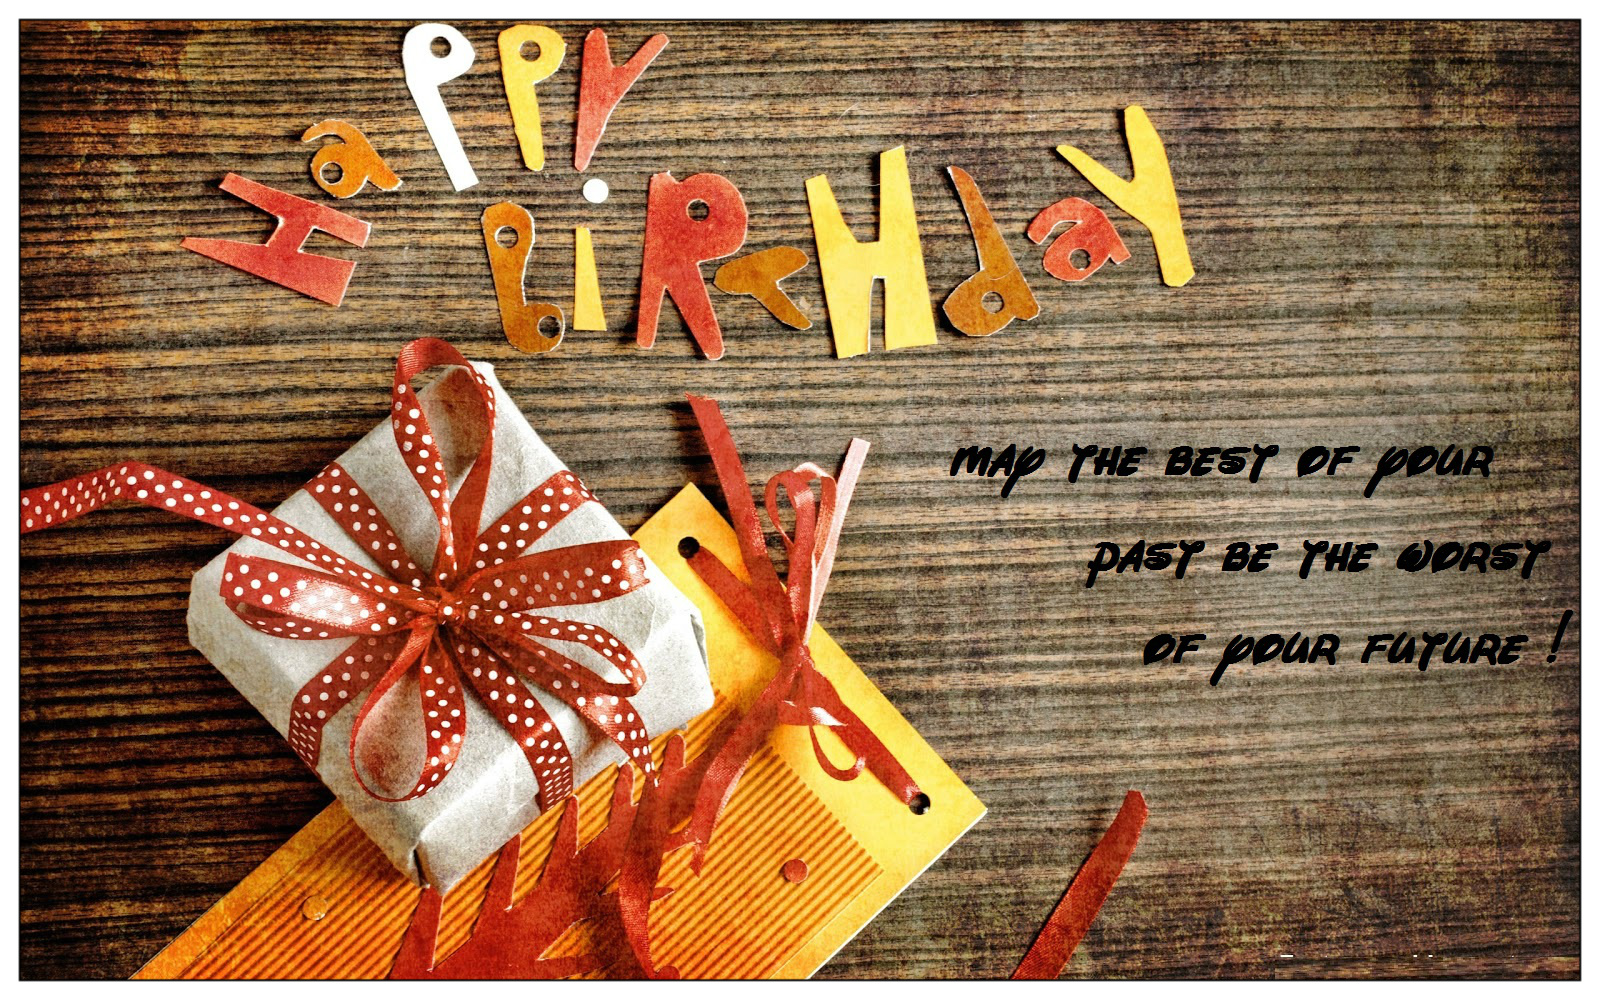 Best happy birthday wishes for friend happy birthday may the best of pour past be the worst of pour future m4hsunfo